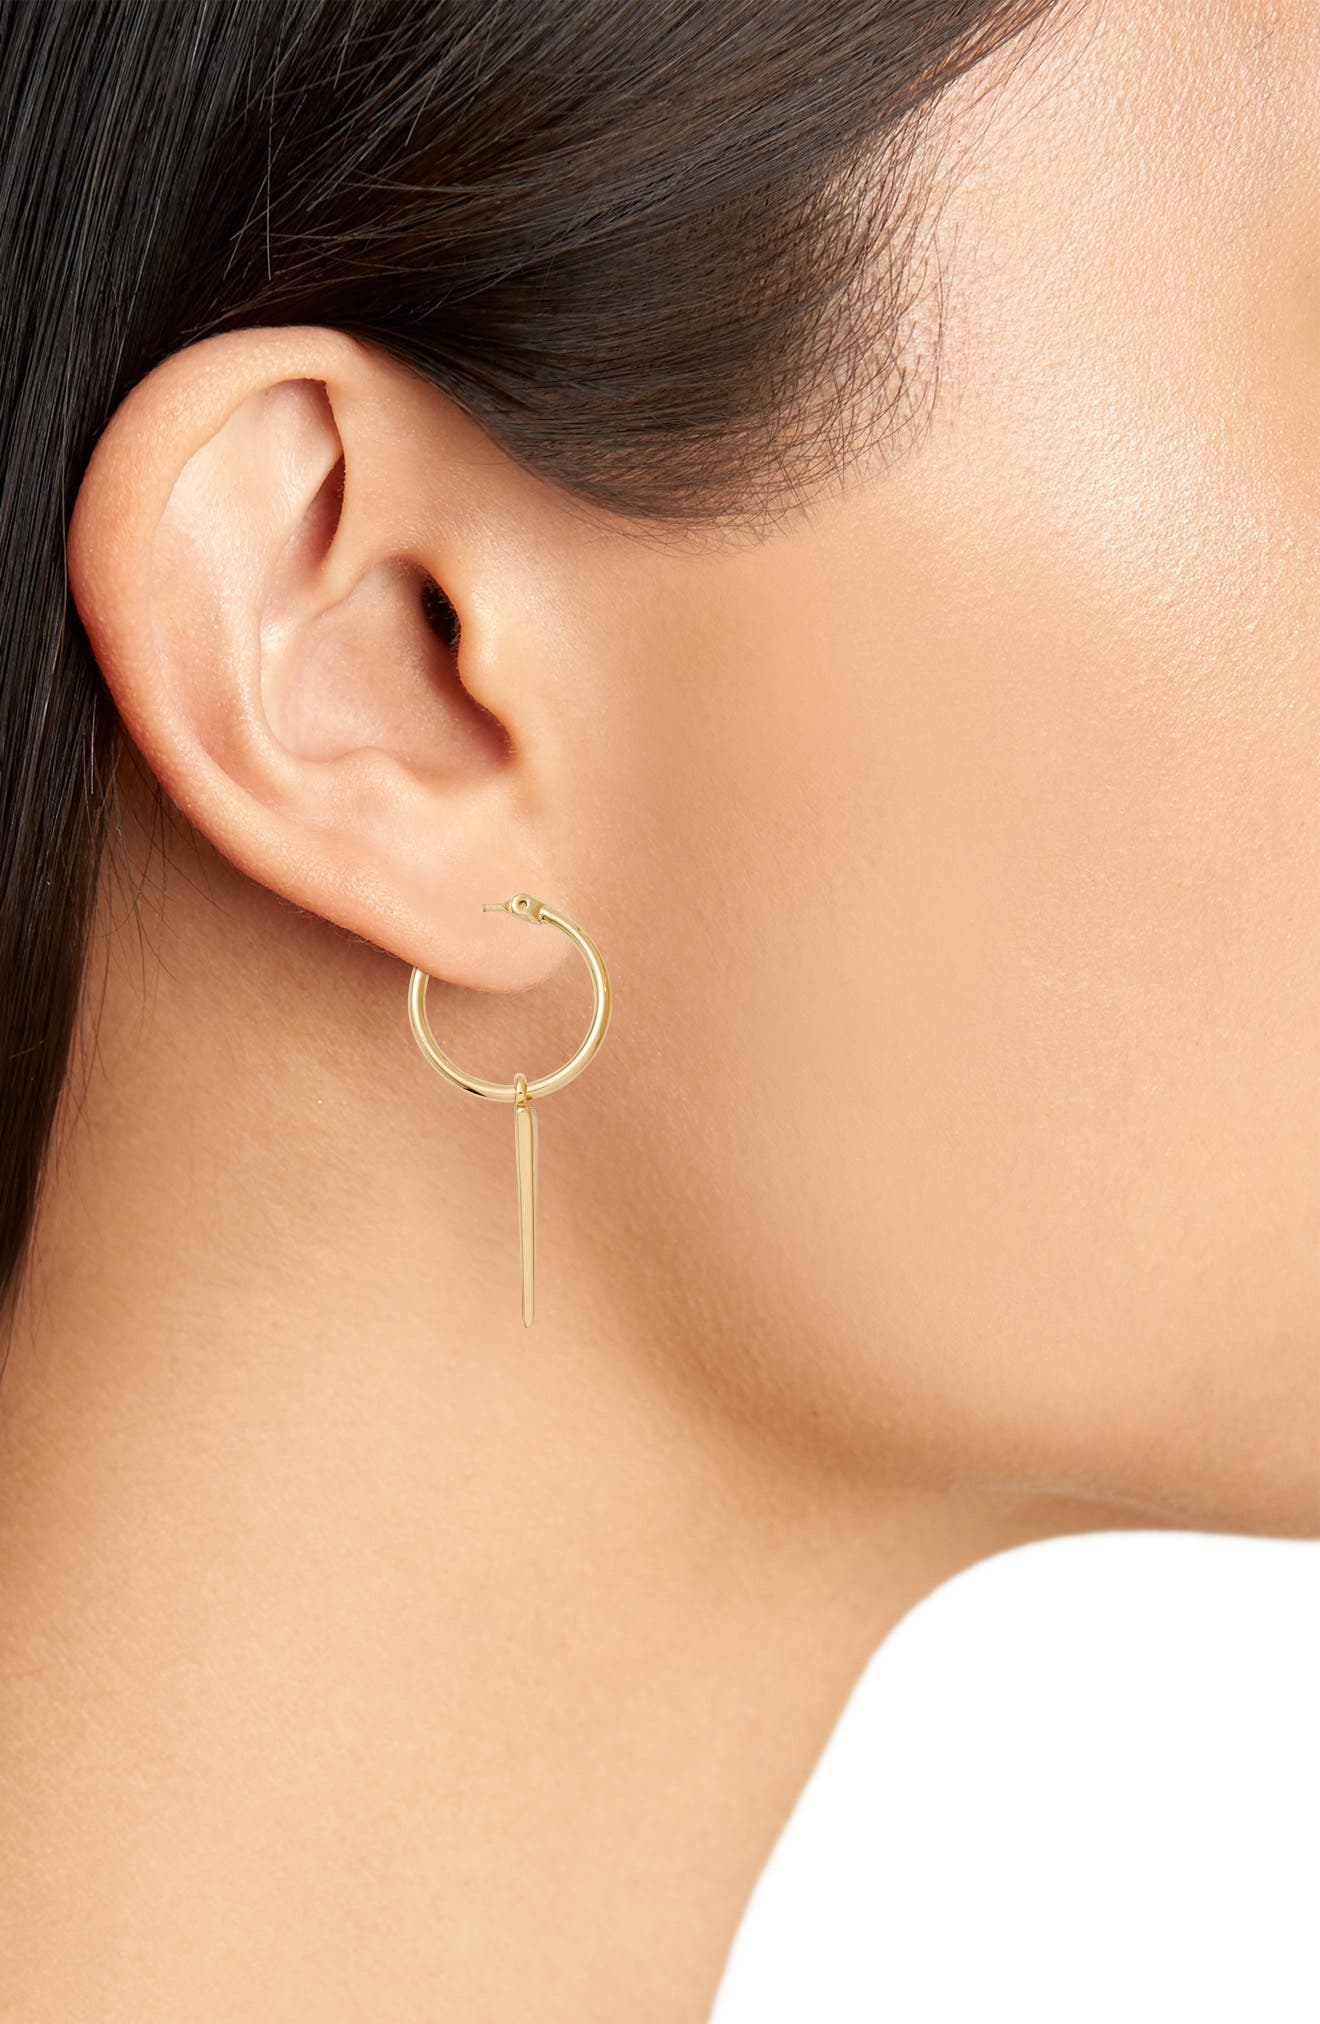 Sharp Shooter Earrings,                             Alternate thumbnail 2, color,                             710